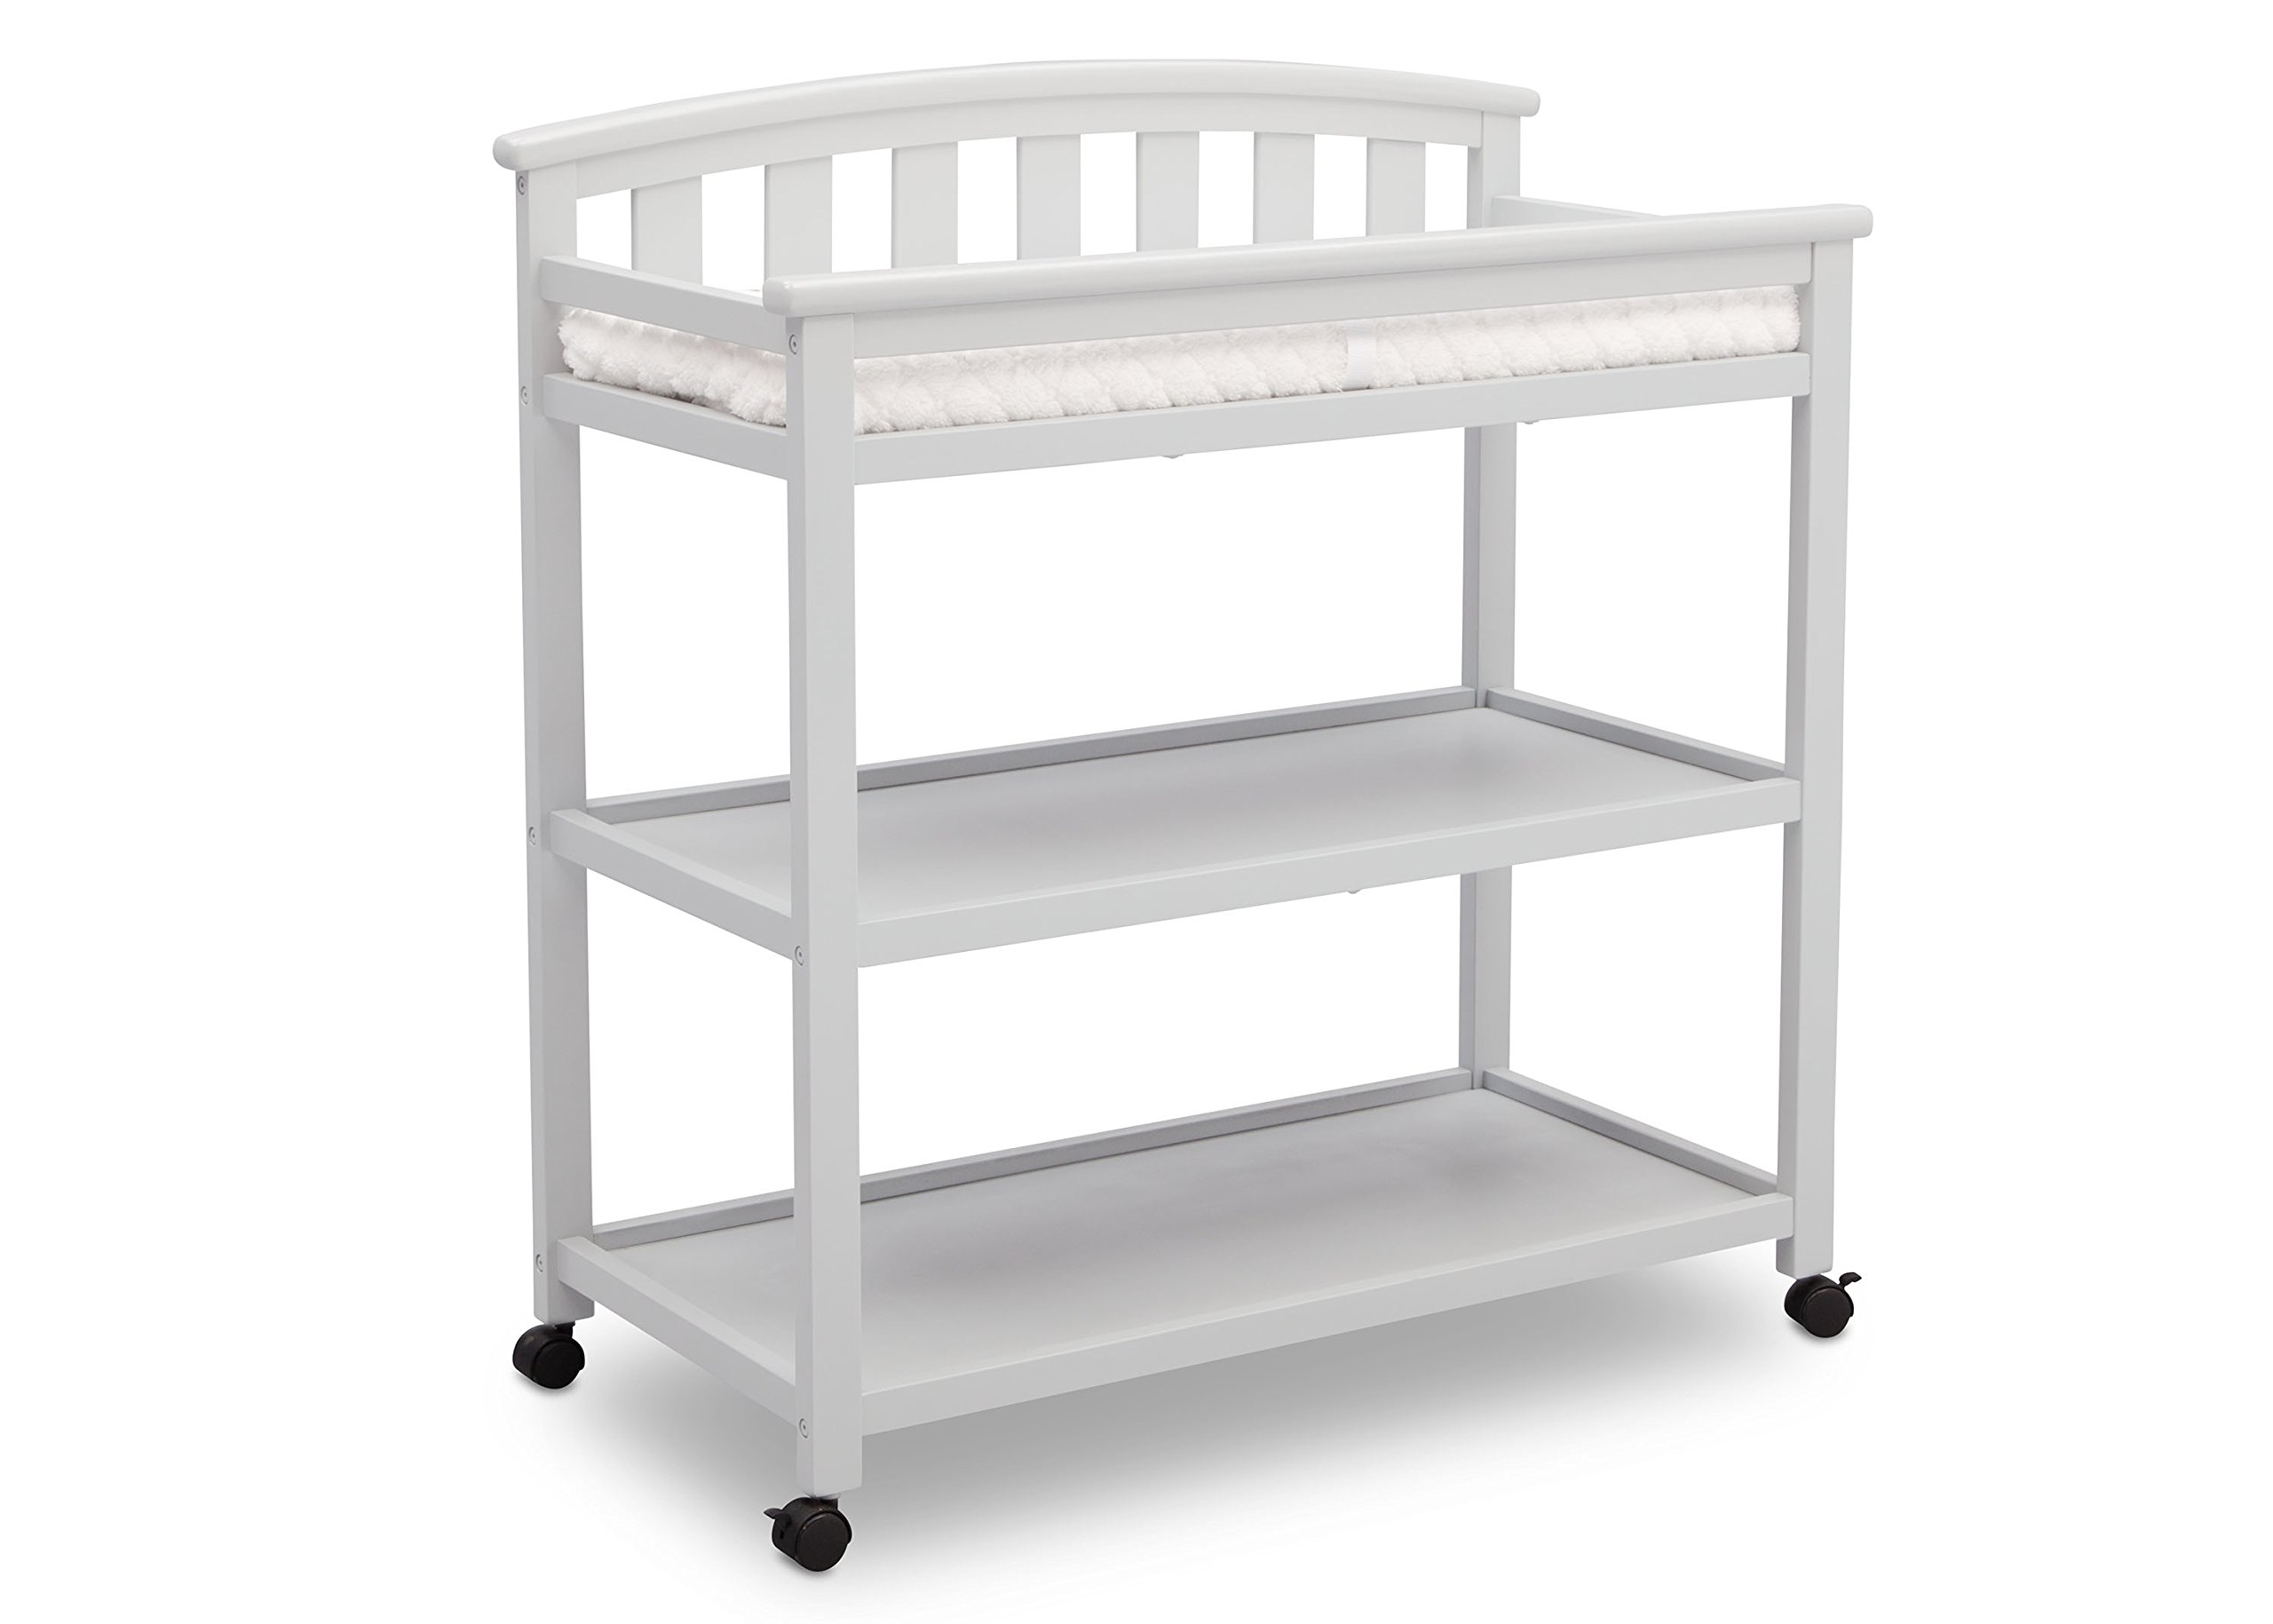 Delta Children Arch Top Changing Table with Casters, Bianca White by Delta Children